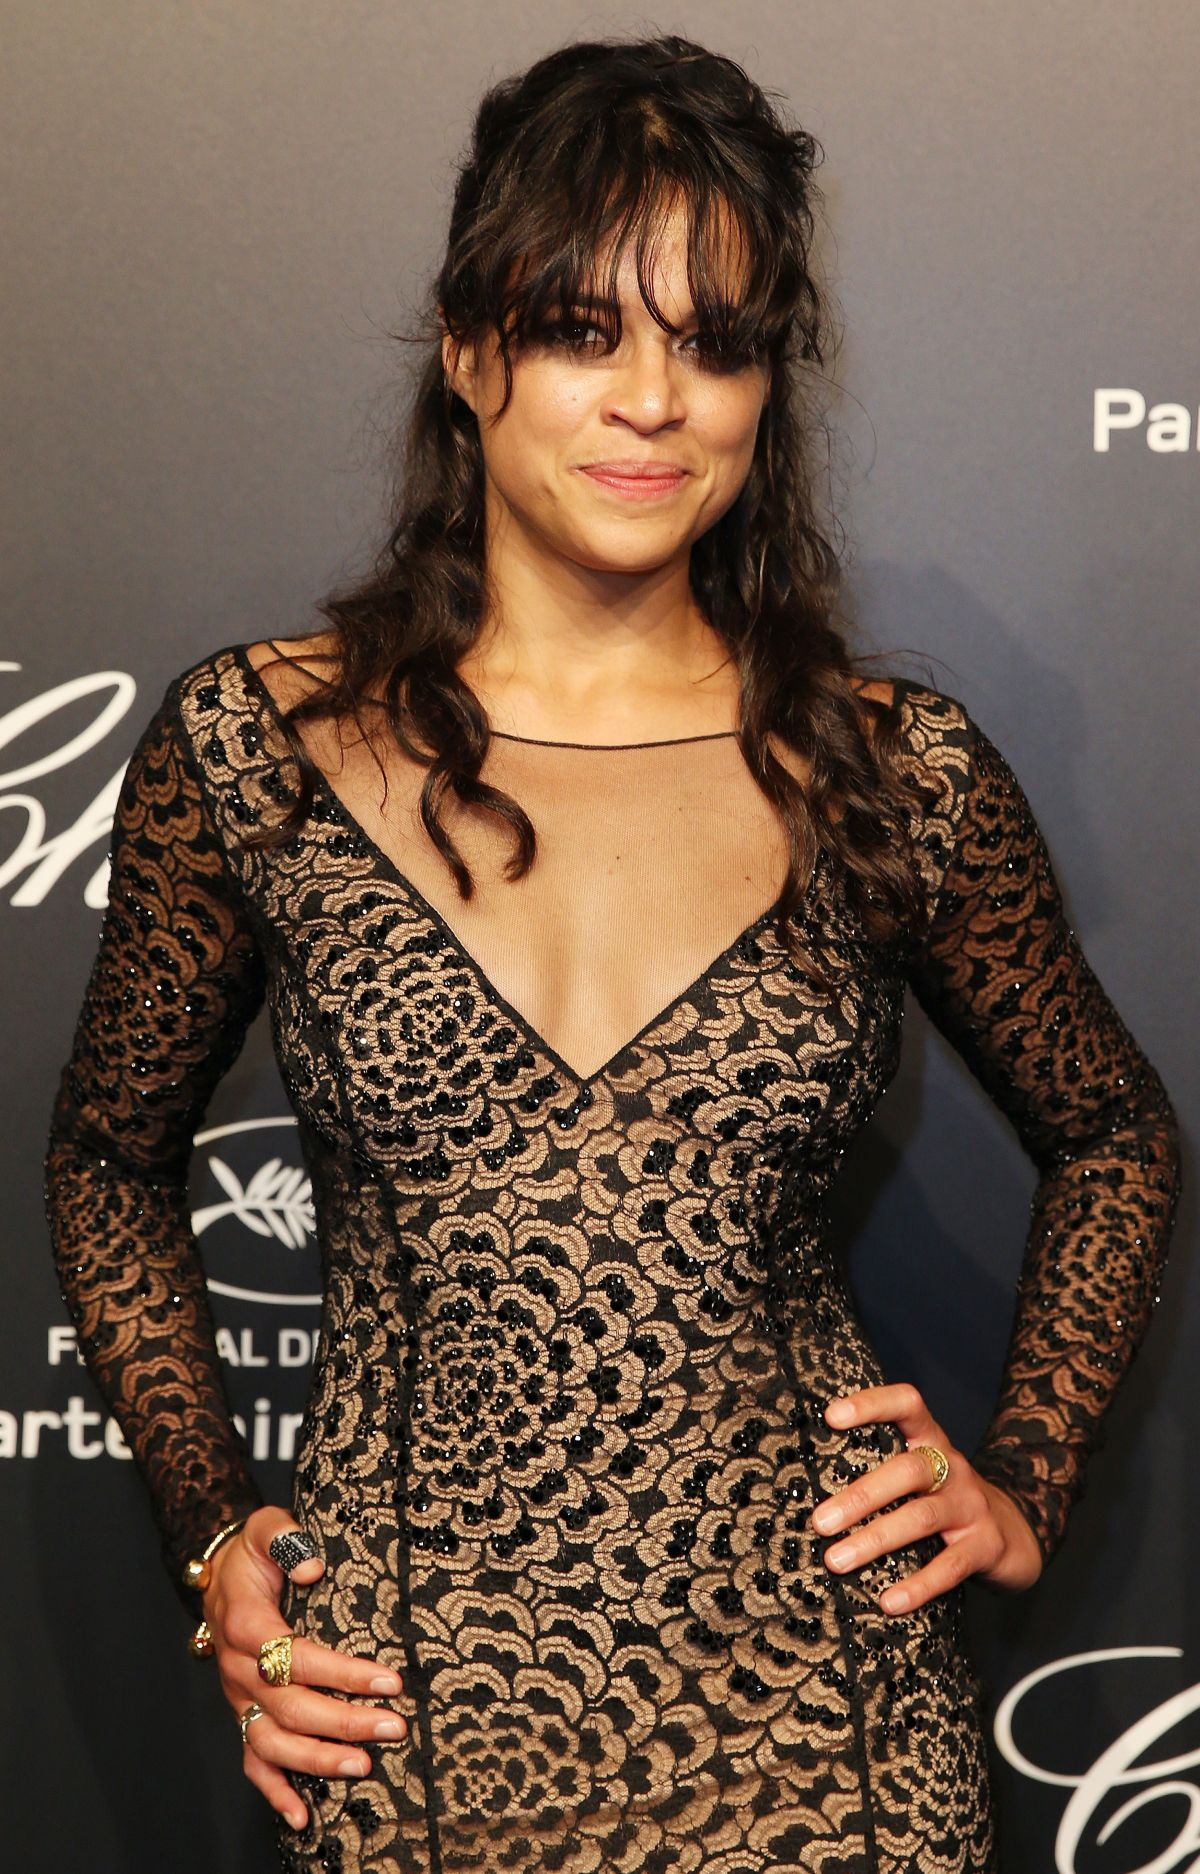 MICHELLE RODRIGUEZ at Soiree Chopard Gold Party in Cannes